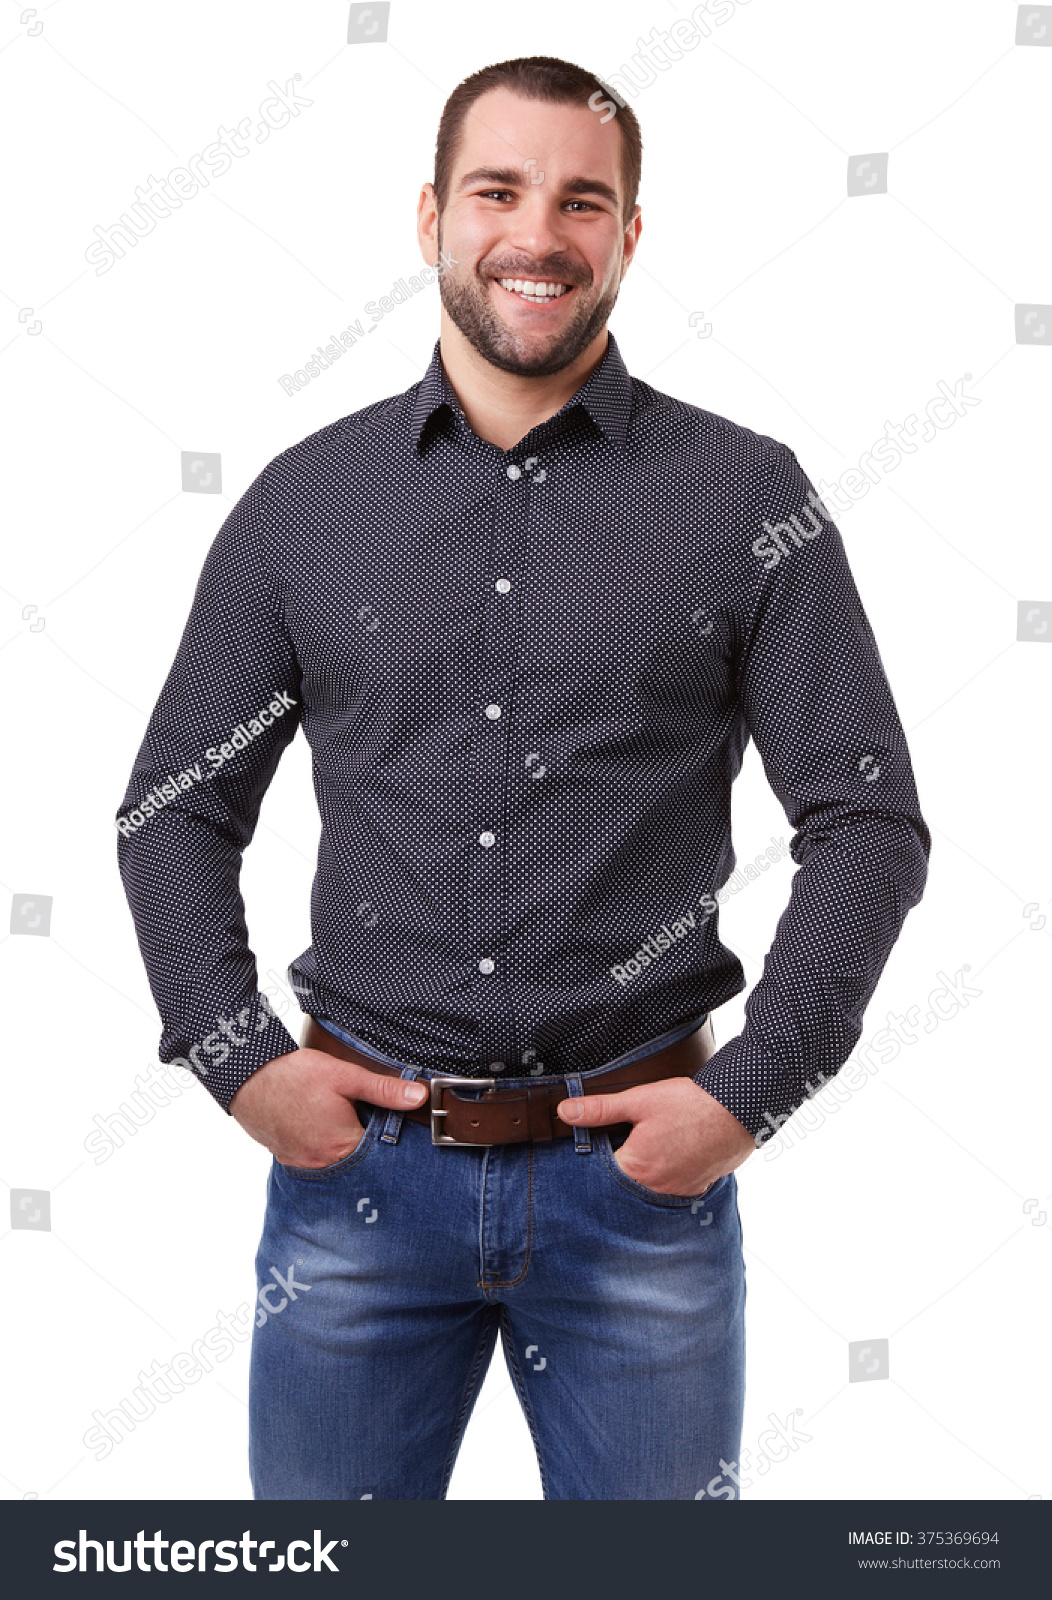 Portrait of young man in black shirt on white background #375369694